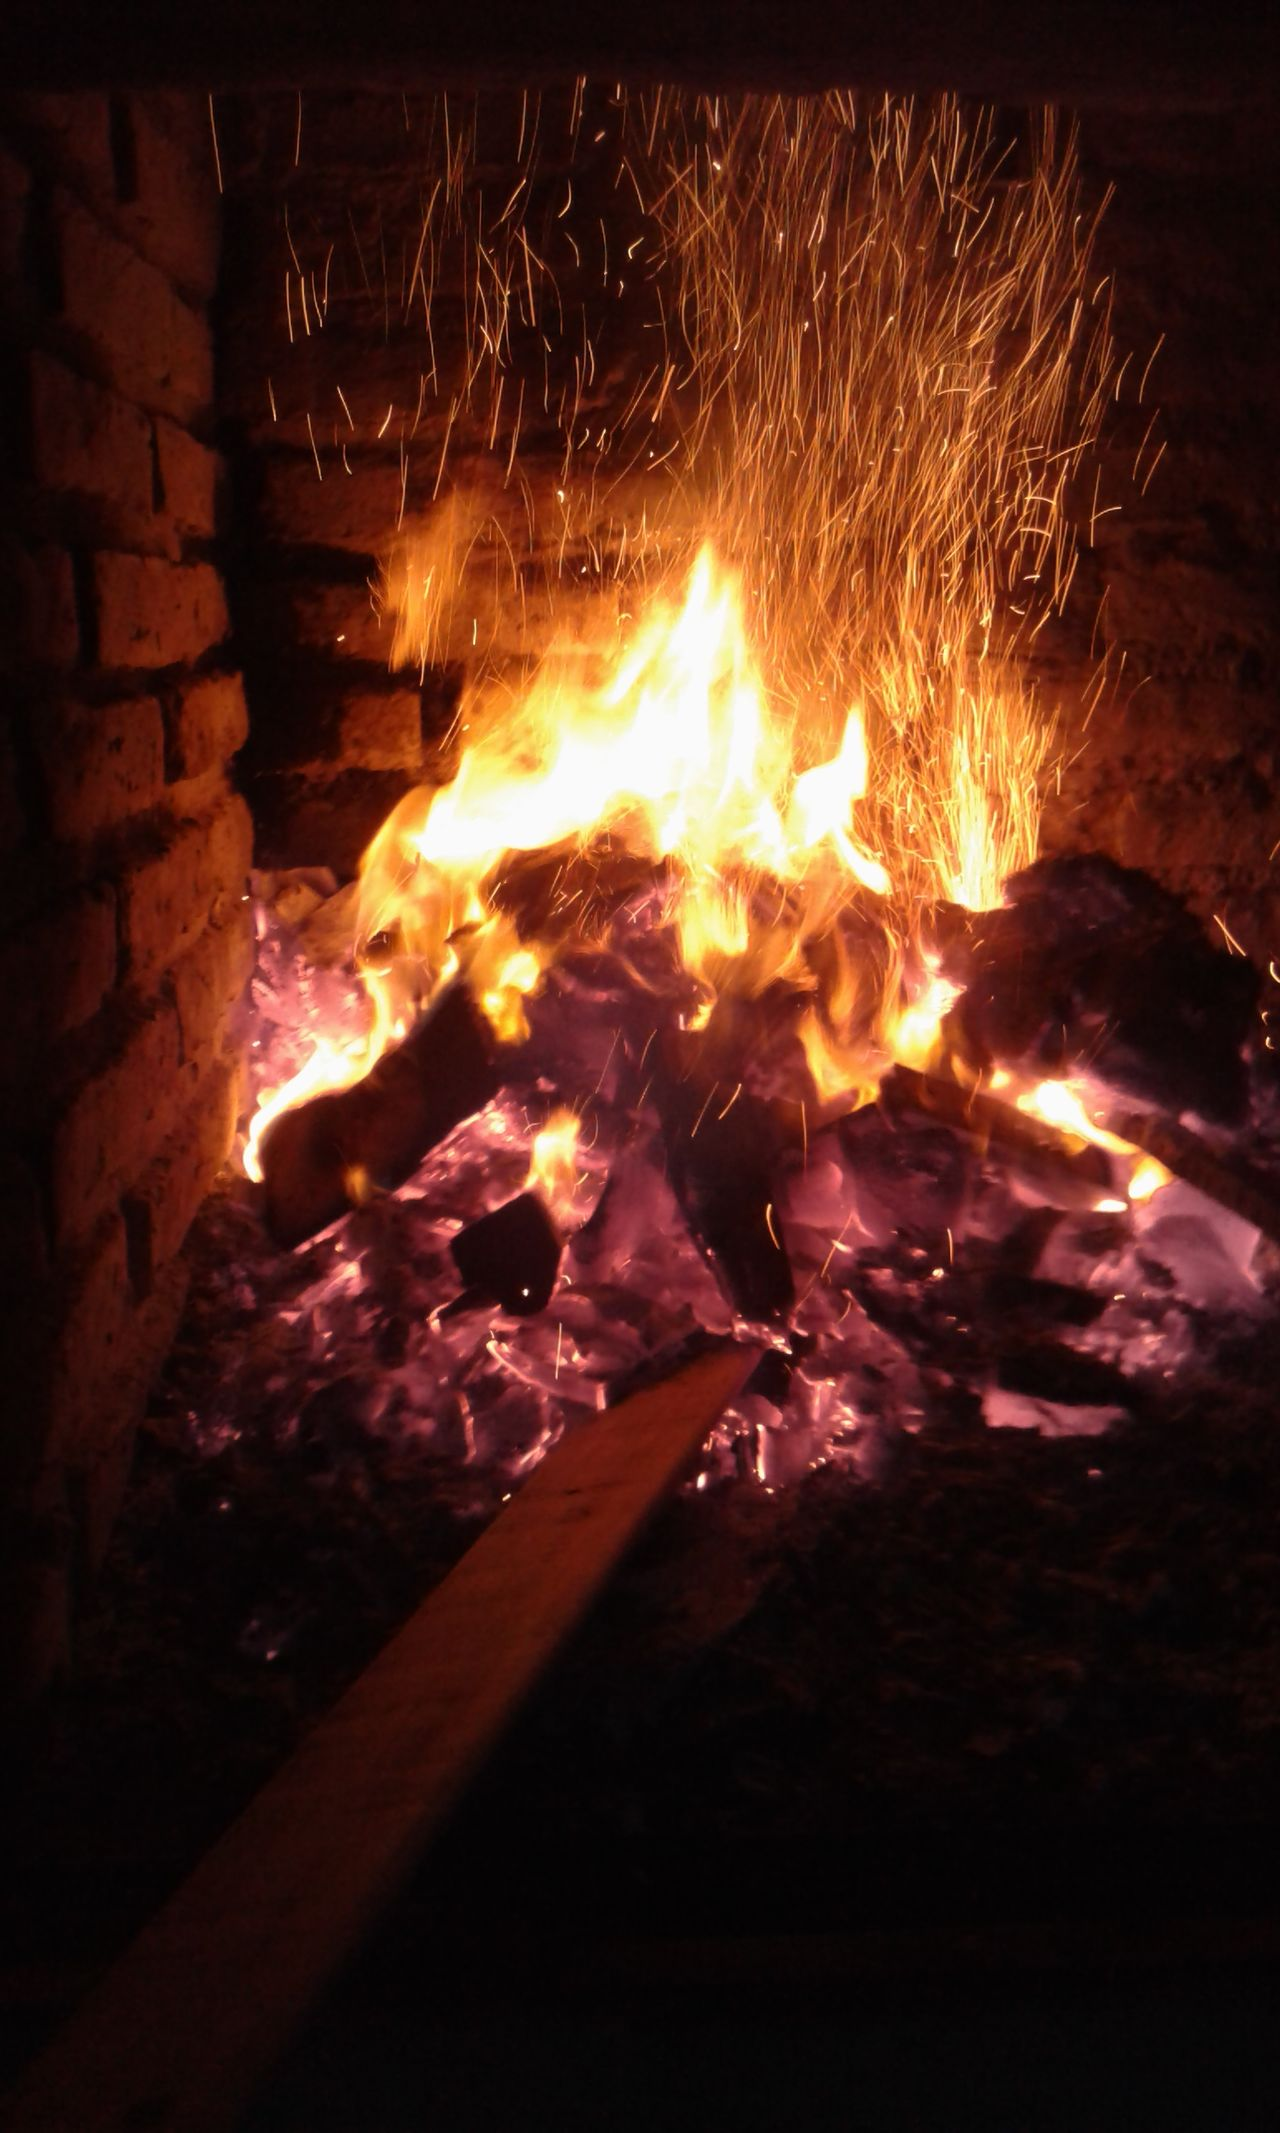 Flame No People Heat - Temperature Burning Night Nature Illuminated Outdoors Close-up Fire On Fire Wood - Material Burning